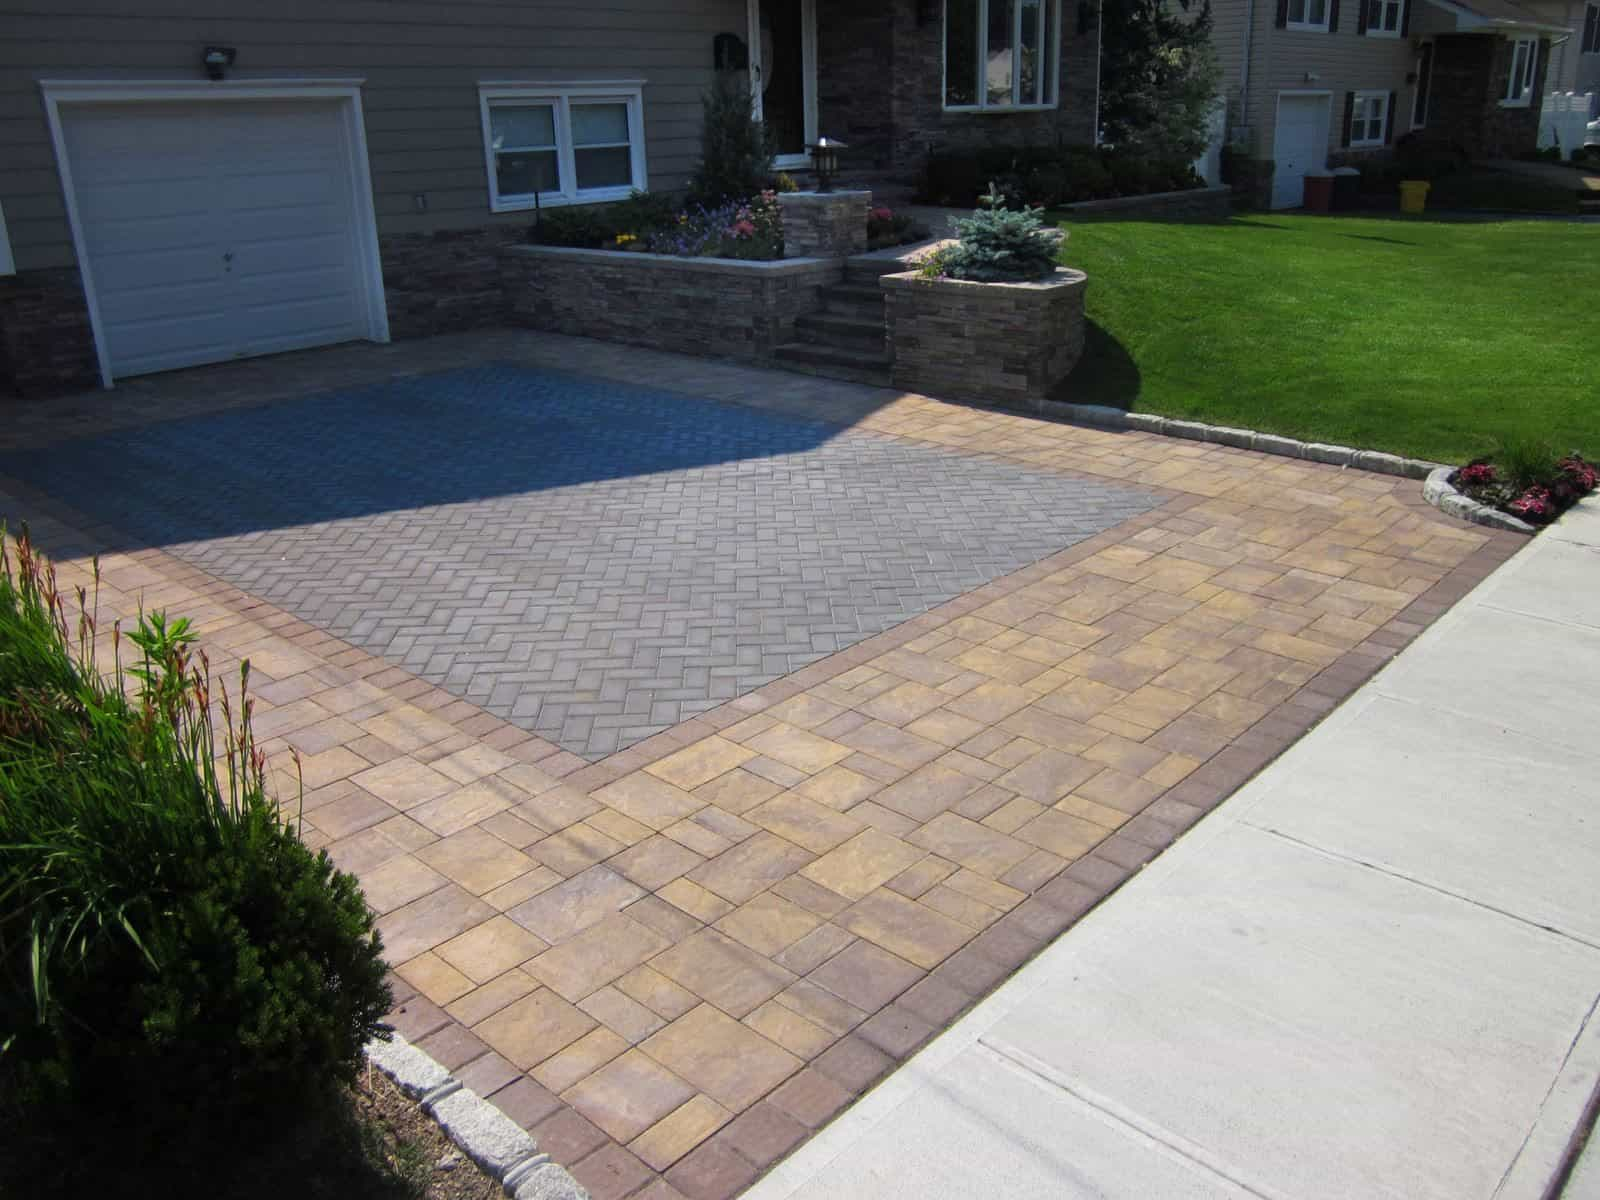 Paver Driveway - Cambridge Ledgestone Paver Driveway- Sahara/Chestnut - Random Pattern with Cambridge - Kings Court Collection - Onyx - Herringbone Pattern inlay - Massapequa, Long Island NY